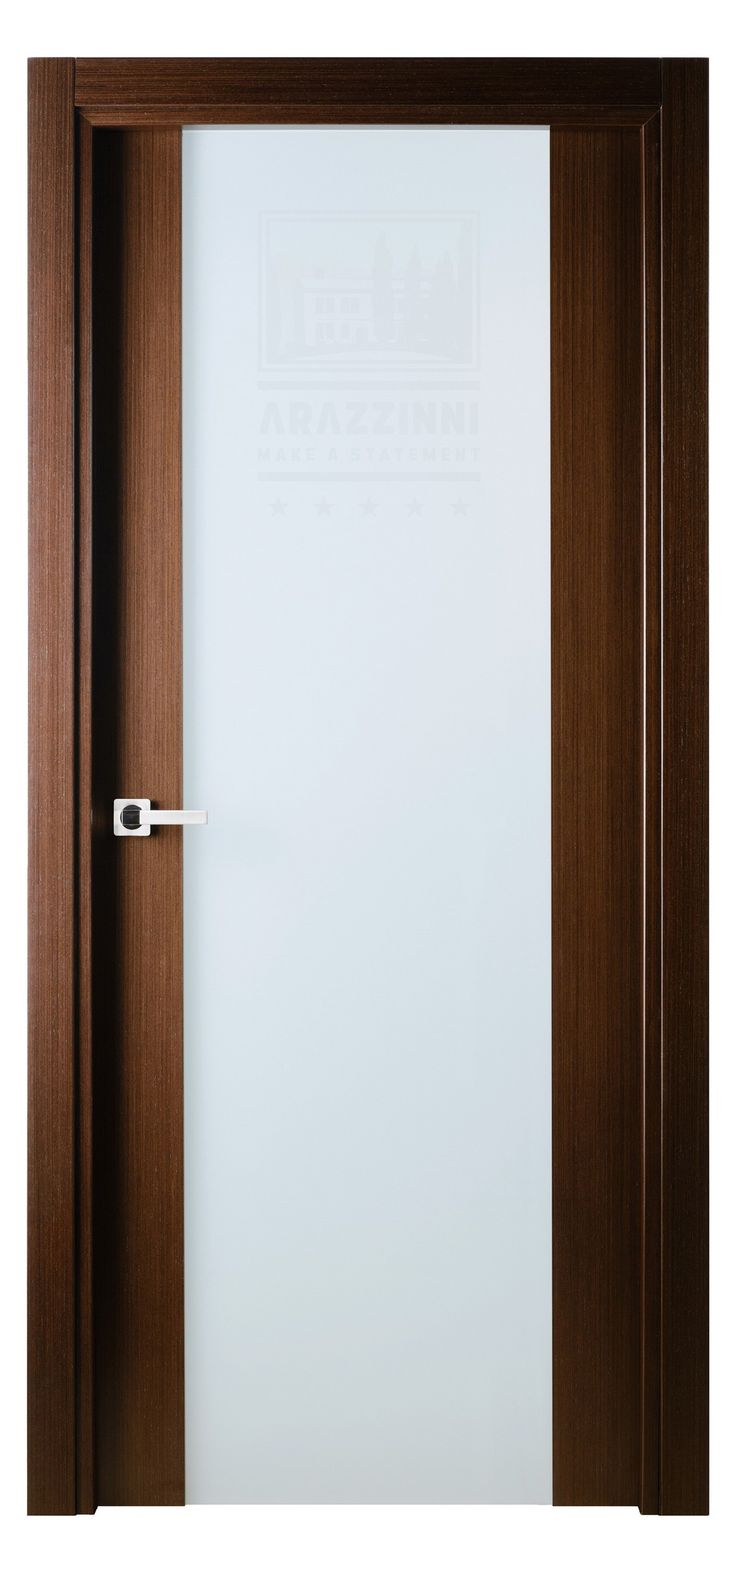 Versai vetro interior door in italian wenge finish for Wood veneer interior doors